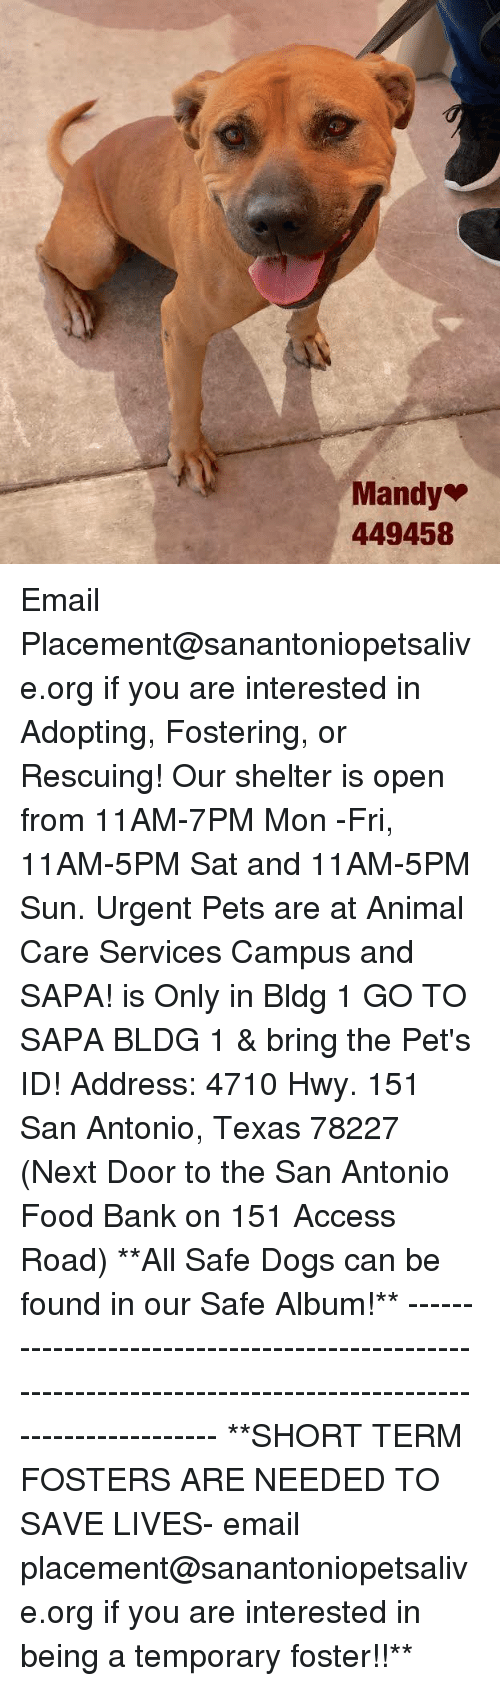 Dogs, Food, and Memes: Mandy  449458 Email Placement@sanantoniopetsalive.org if you are interested in Adopting, Fostering, or Rescuing!  Our shelter is open from 11AM-7PM Mon -Fri, 11AM-5PM Sat and 11AM-5PM Sun.  Urgent Pets are at Animal Care Services Campus and SAPA! is Only in Bldg 1 GO TO SAPA BLDG 1 & bring the Pet's ID! Address: 4710 Hwy. 151 San Antonio, Texas 78227 (Next Door to the San Antonio Food Bank on 151 Access Road)  **All Safe Dogs can be found in our Safe Album!** ---------------------------------------------------------------------------------------------------------- **SHORT TERM FOSTERS ARE NEEDED TO SAVE LIVES- email placement@sanantoniopetsalive.org if you are interested in being a temporary foster!!**